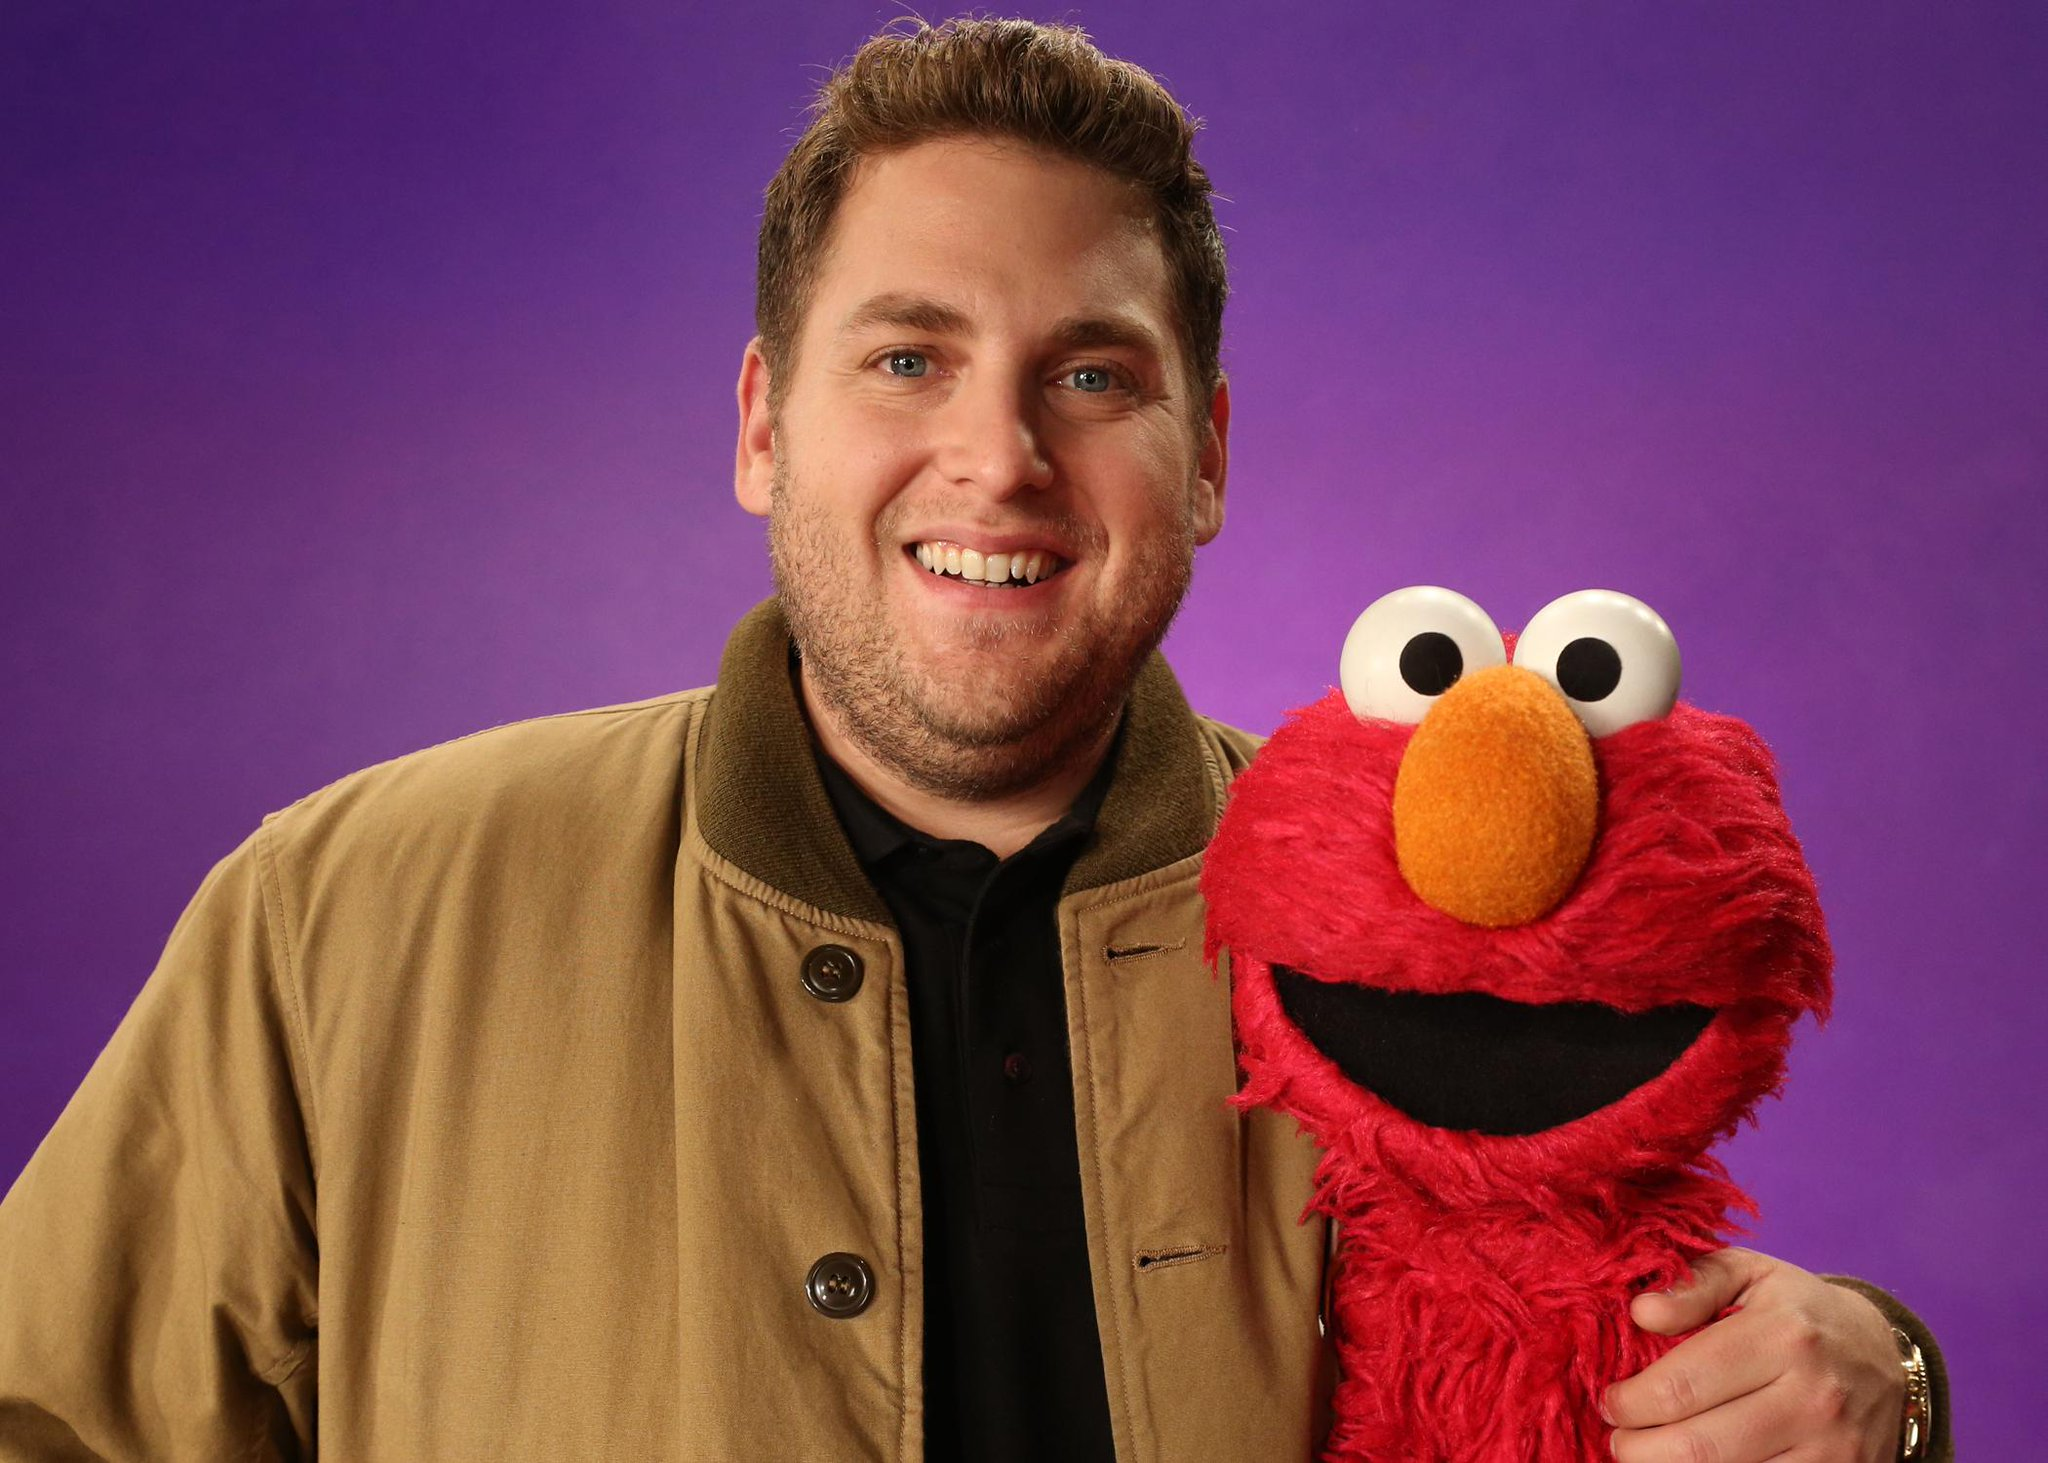 Elmo loves his friend Mr. @JonahHill! This week we learned all about the word E-M-P-T-Y. Empty! http://t.co/HgUSCcnj9S